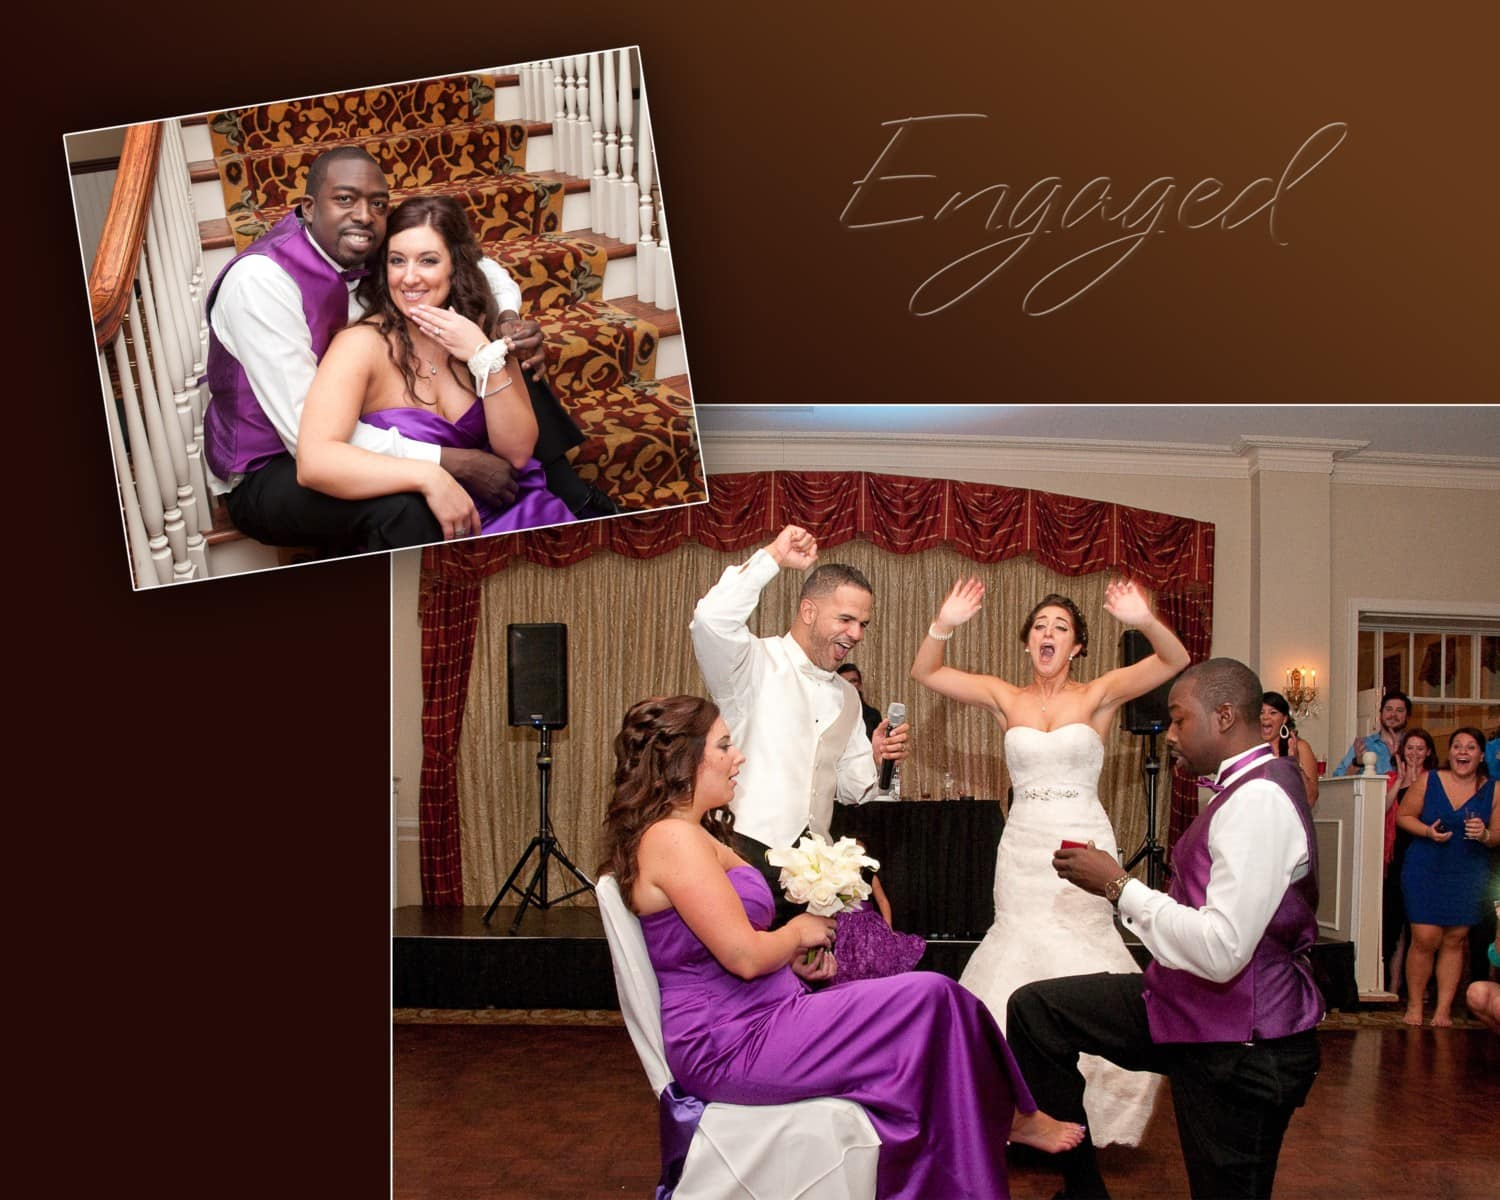 engagement composite wedding photography